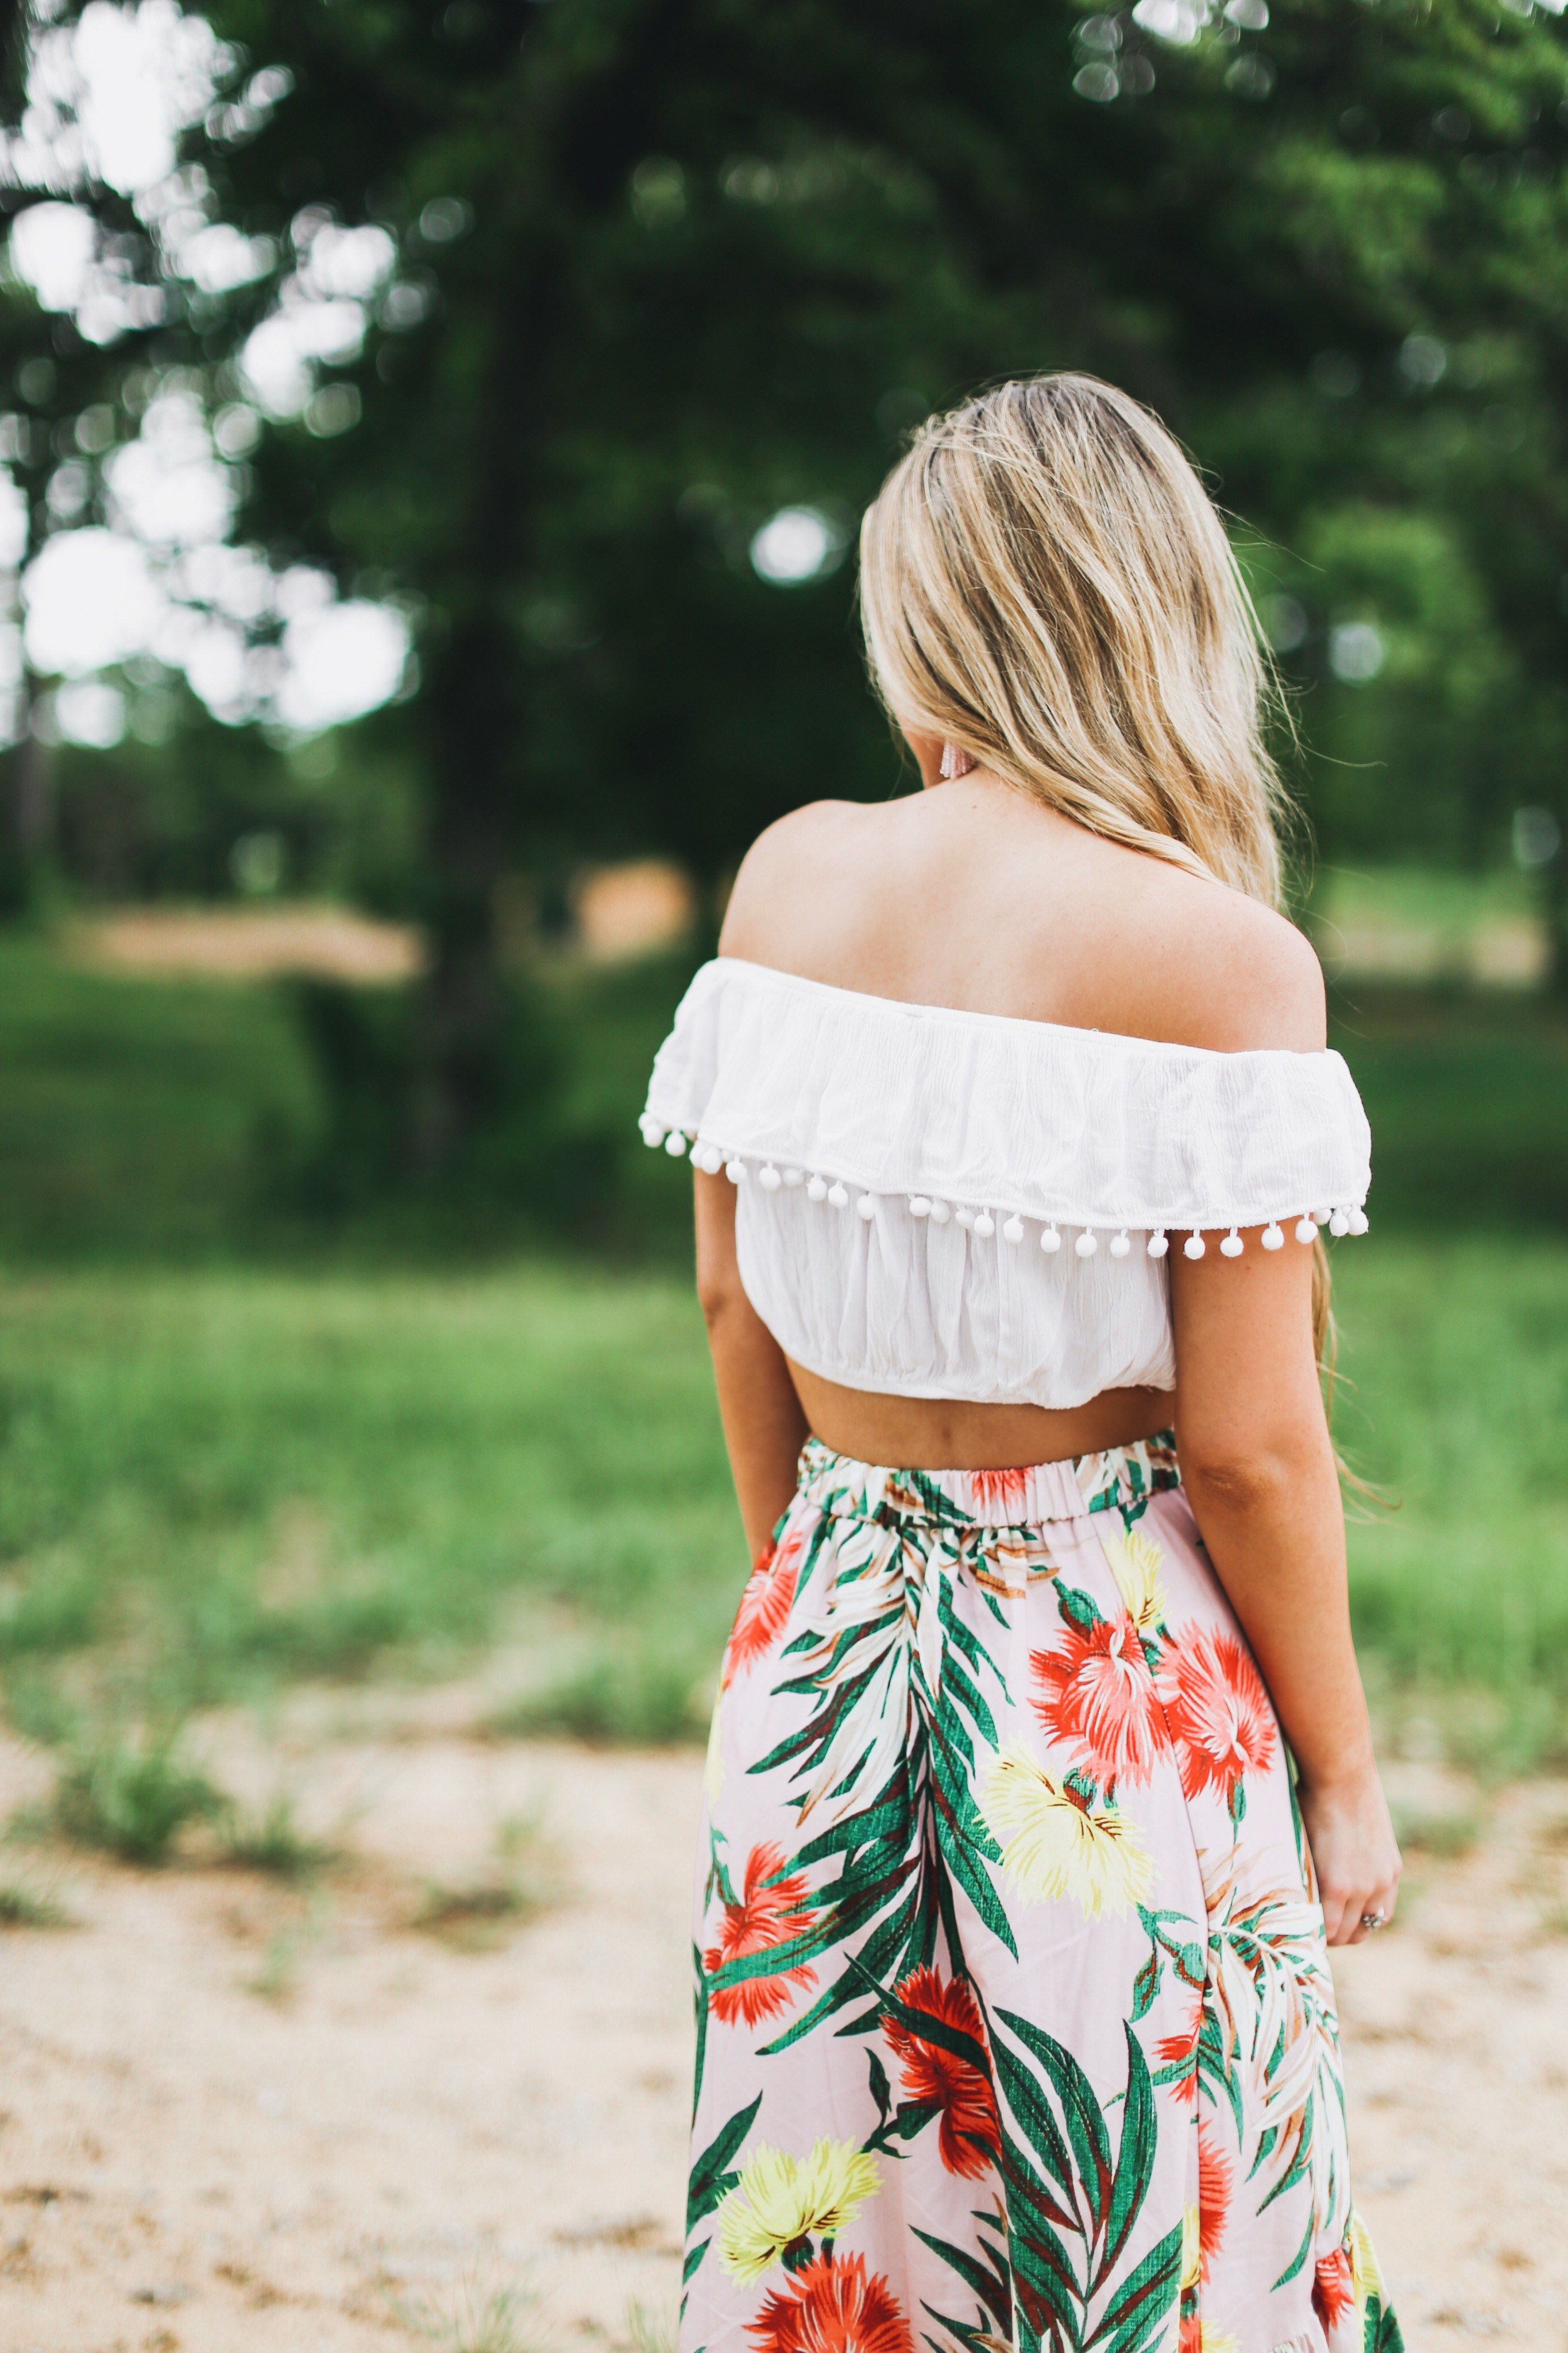 c00a2c3b8d Tropical palm print midi skirt + Pom Pom top | { summer & spring ...